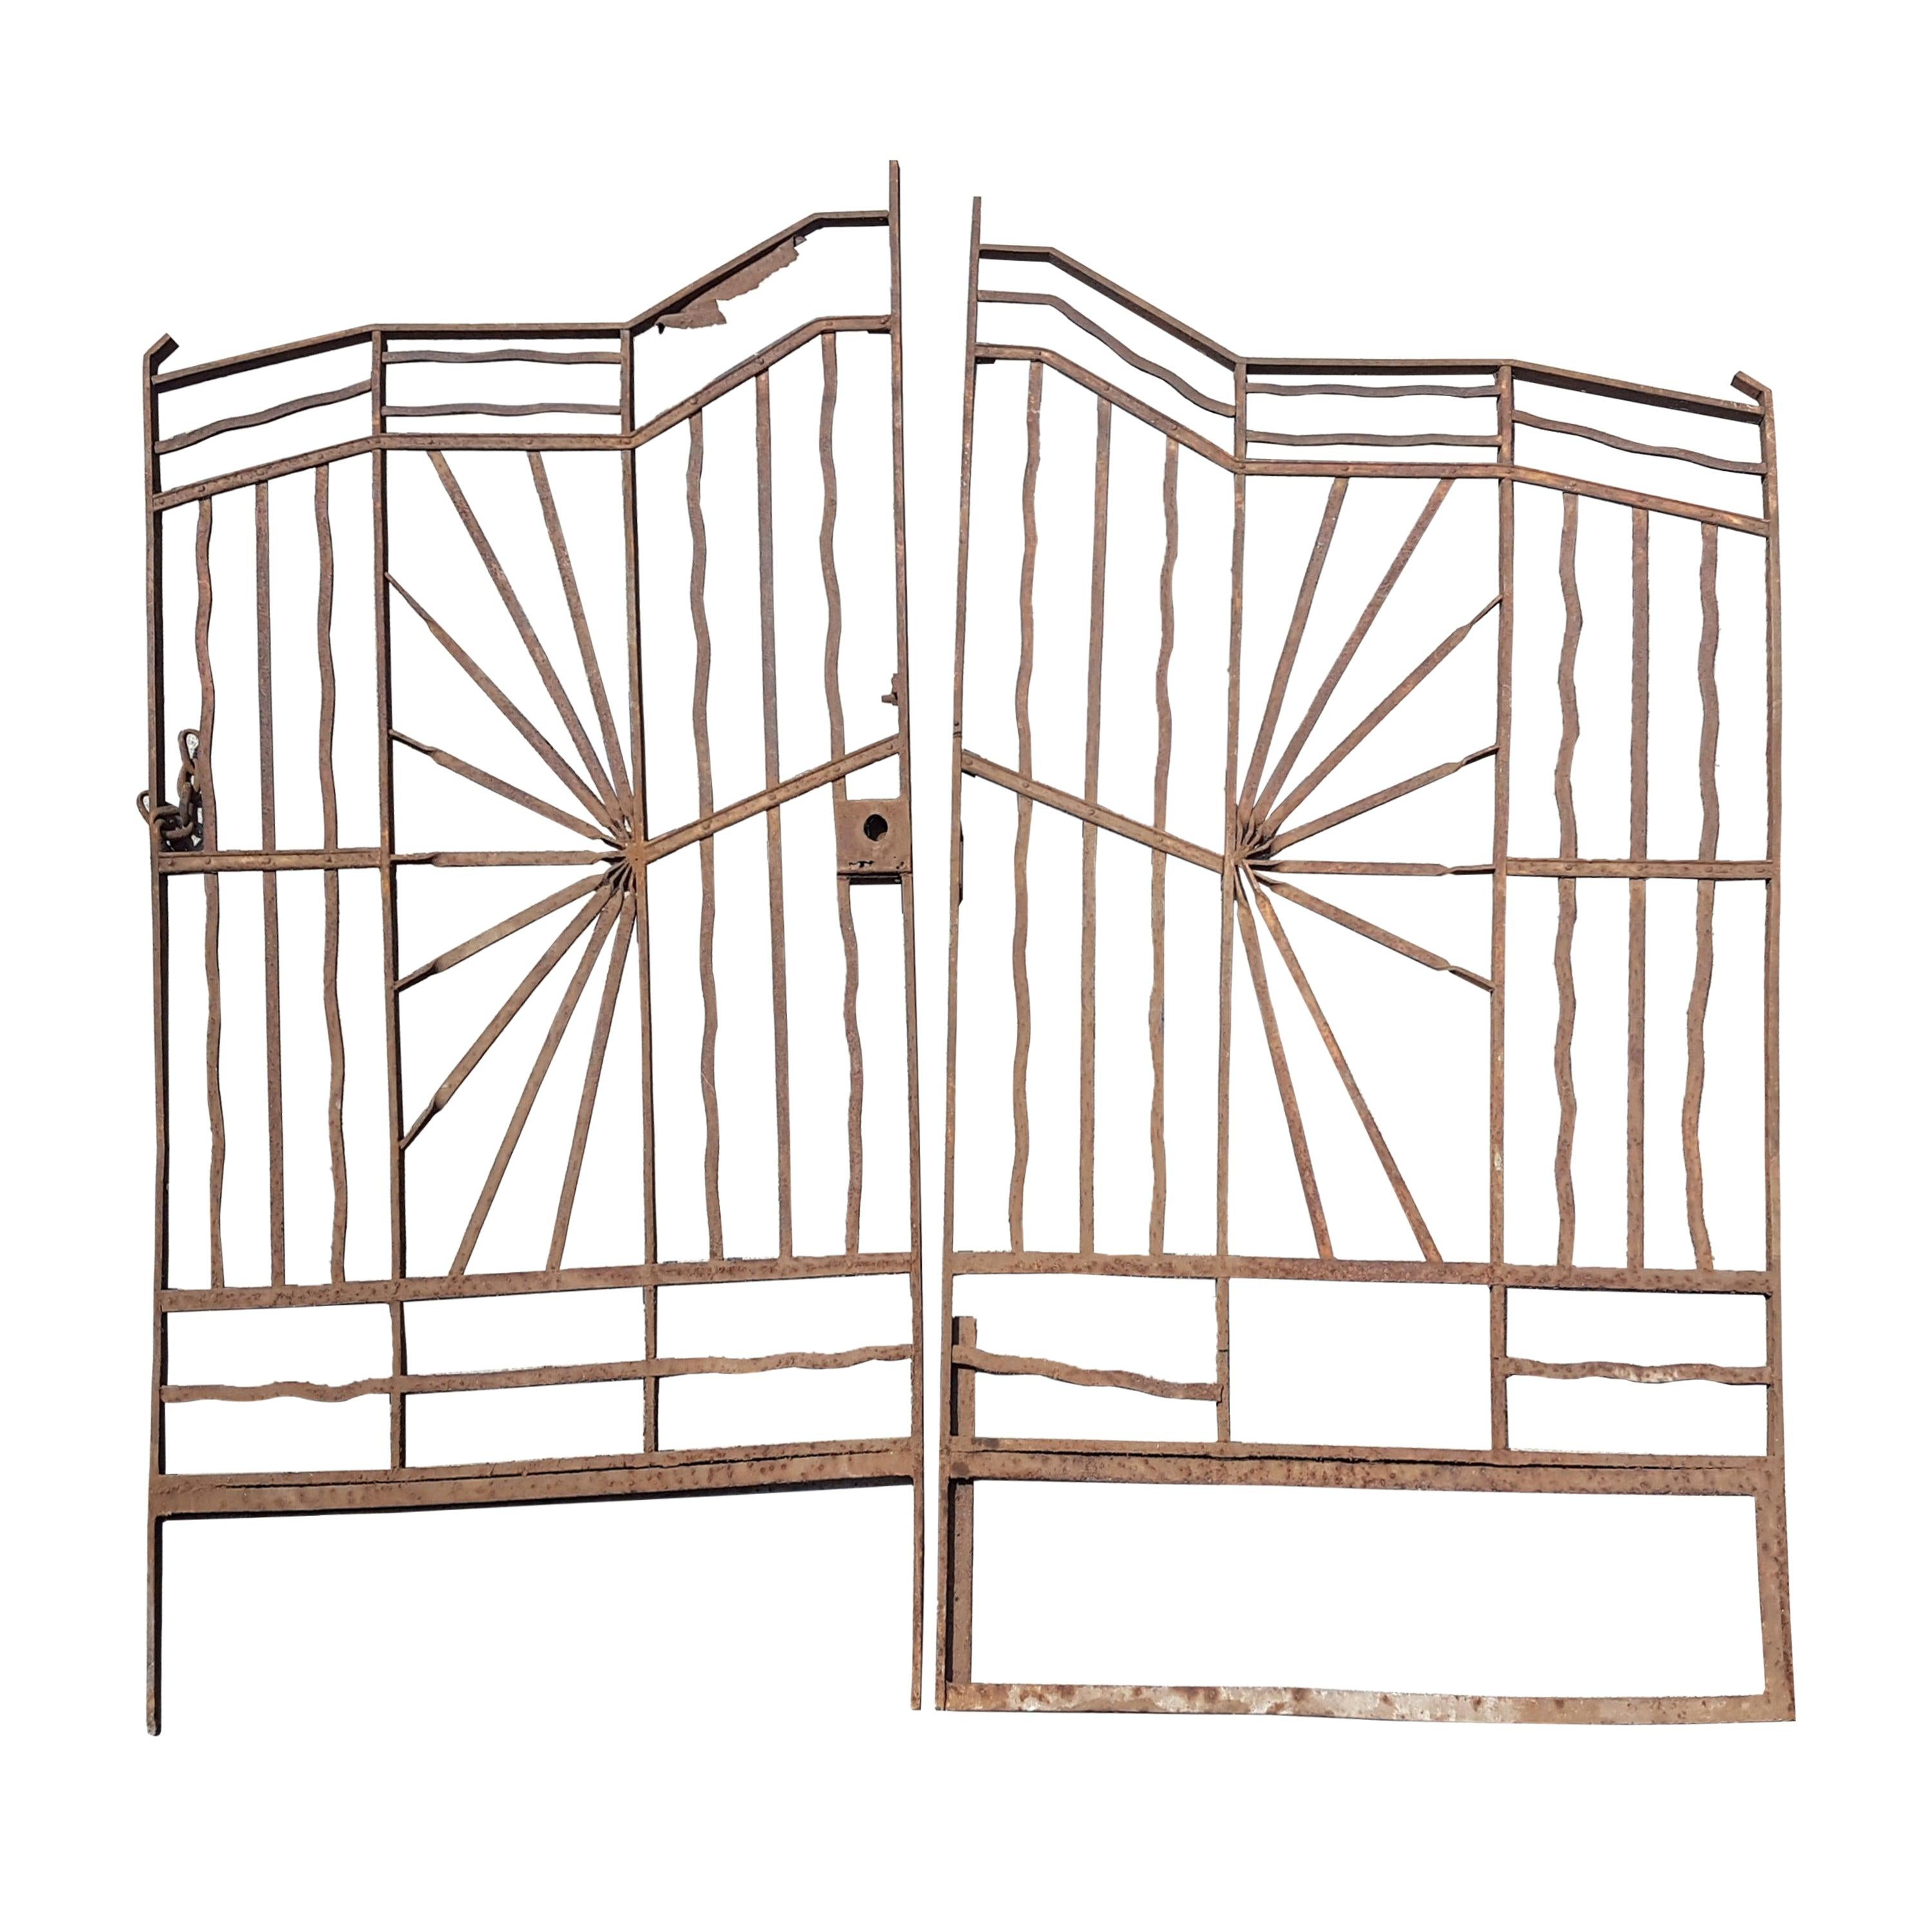 Mexican Art Deco Style Iron Door Grill